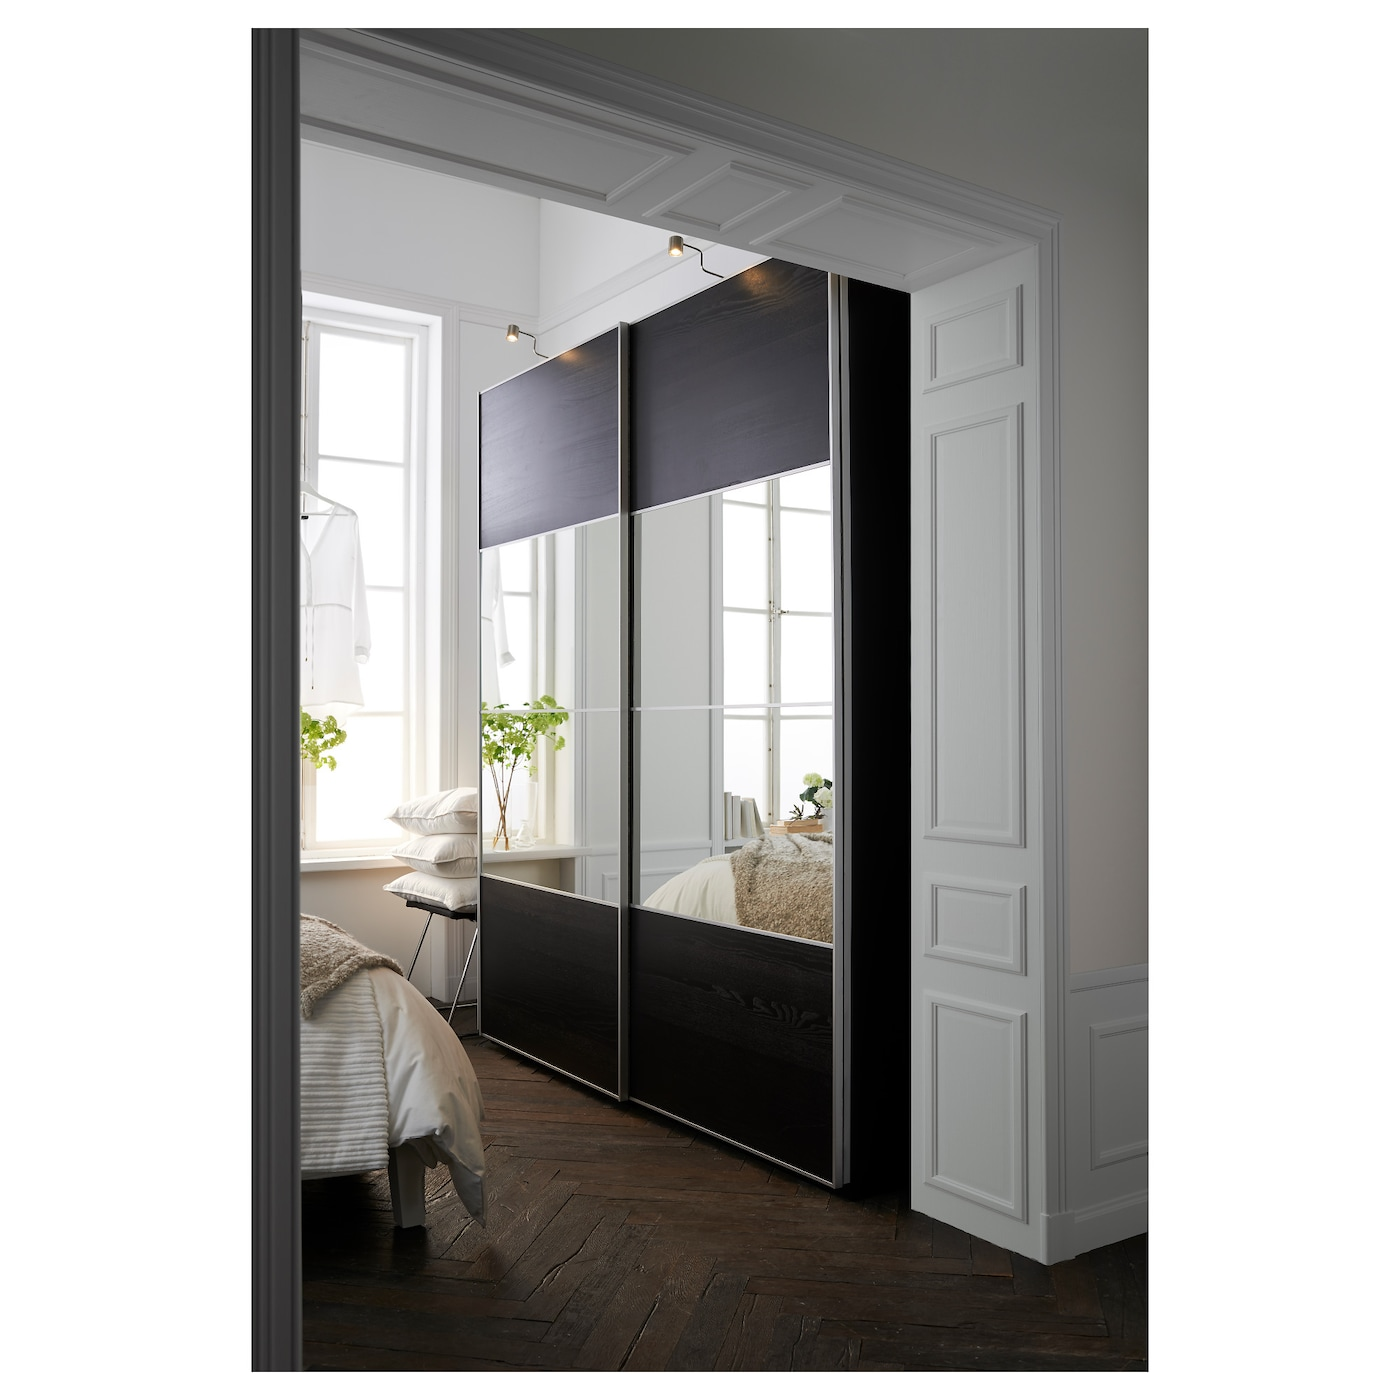 Pax wardrobe black brown auli ilseng 200x66x236 cm ikea - Amenagement placard chambre ikea ...